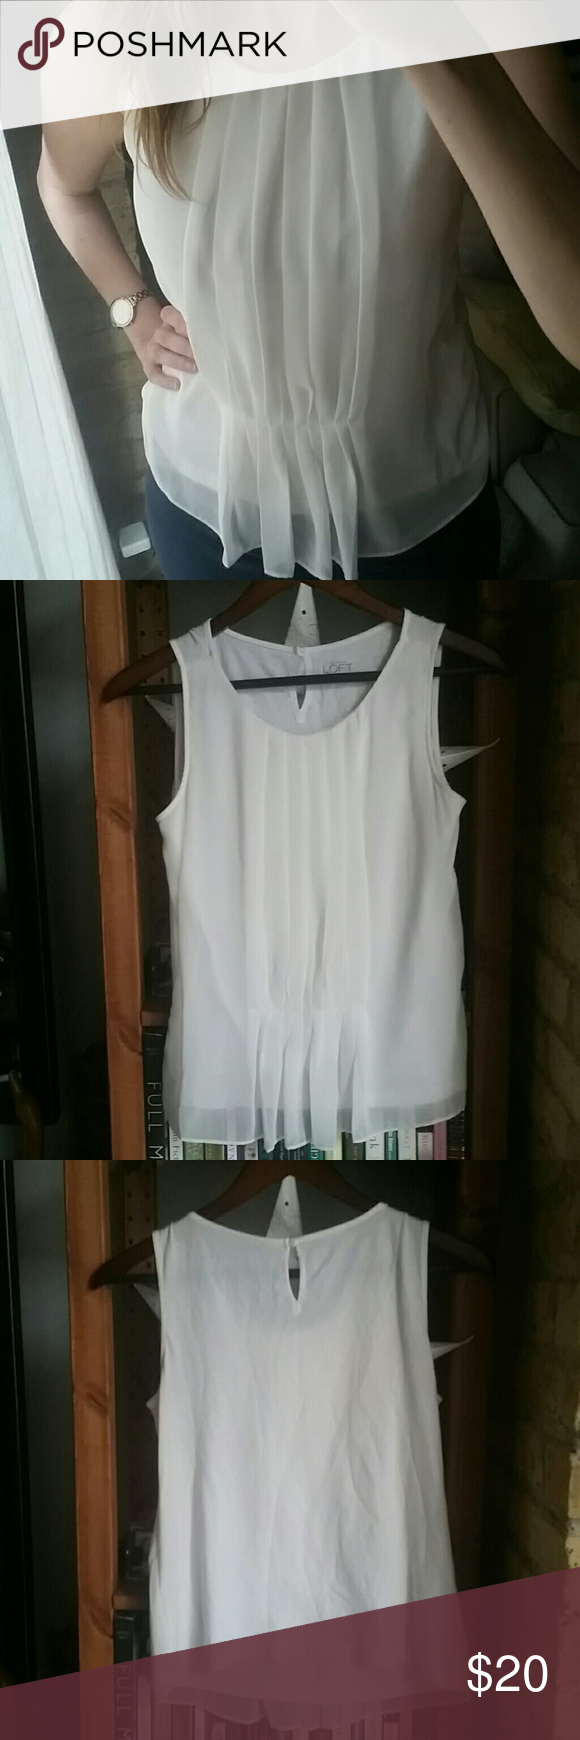 Pleated front tank top Very classy top with a sheer layer with pleats on the front. Great for going out or under a blazer for work! Perfect condition!  Make an offer! :) LOFT Tops Tank Tops